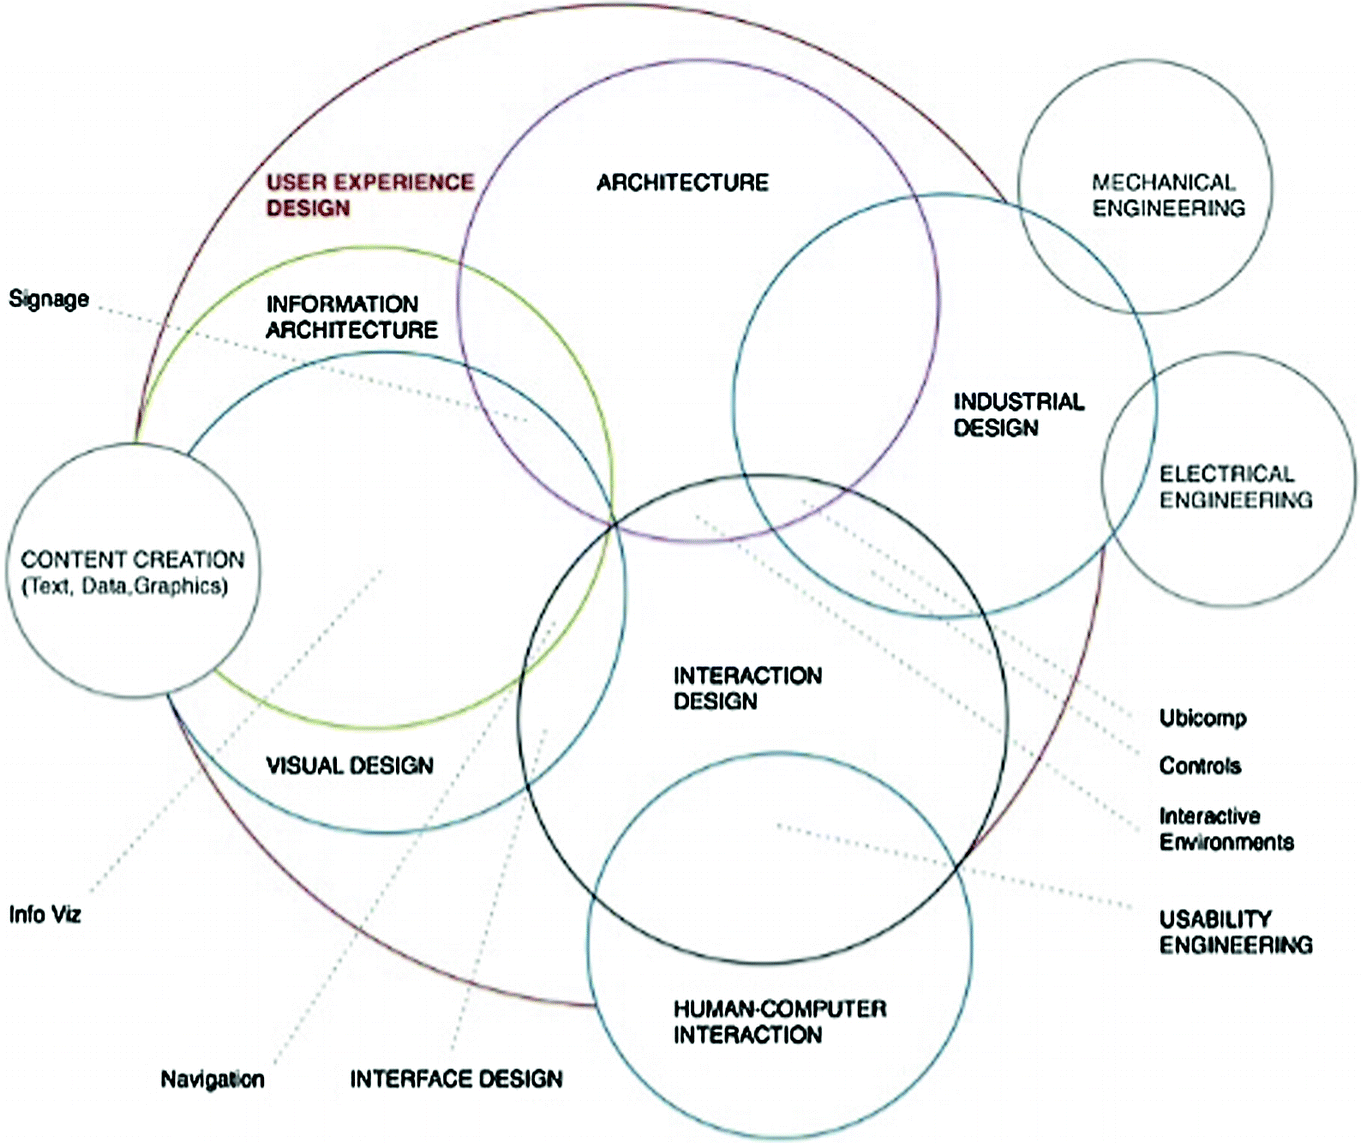 how big data affects the design of urban furniture an approach from Enterprise Architecture Diagram open image in new window